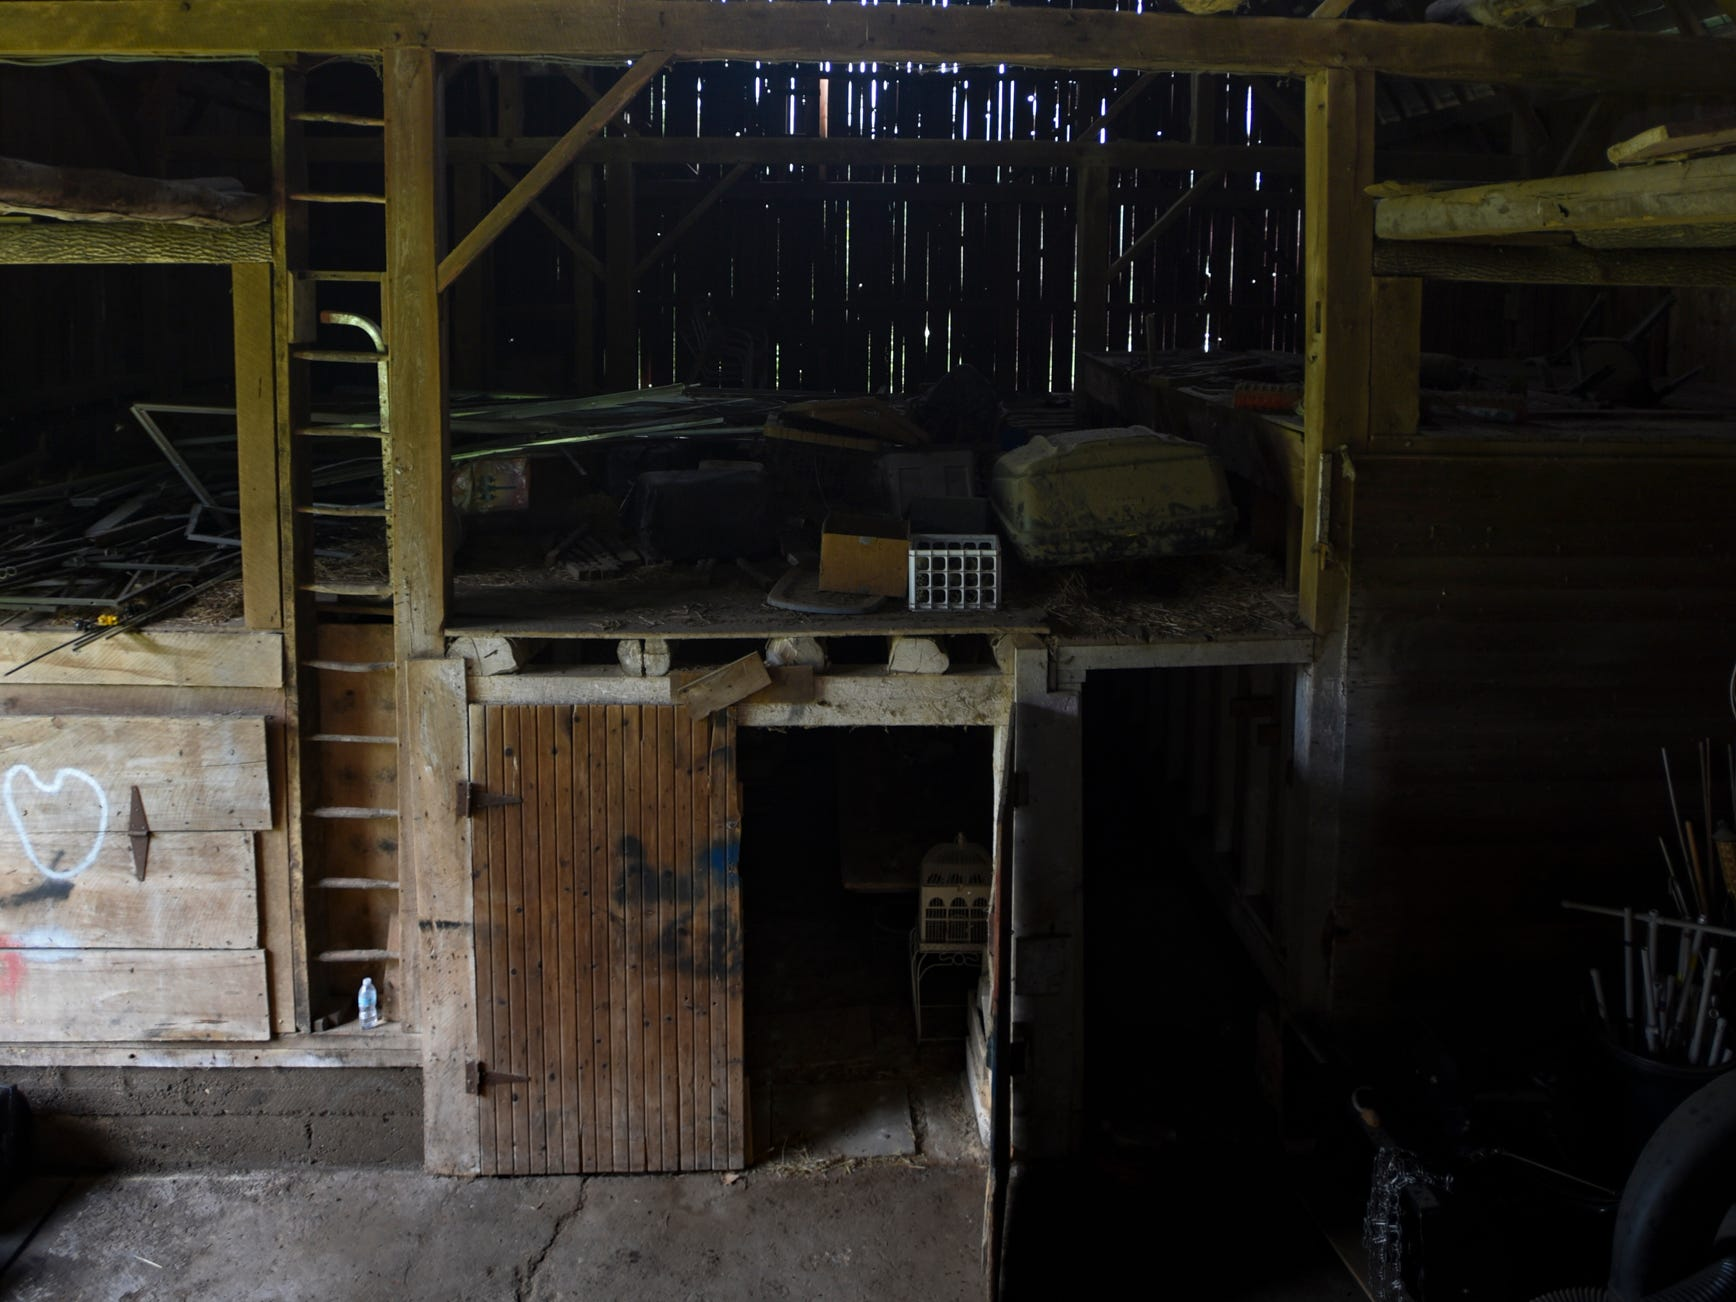 A peek inside the barn of the historic Shaft homestead in Shaftsburg.  The five bedroom farmhouse  was built in 1846.